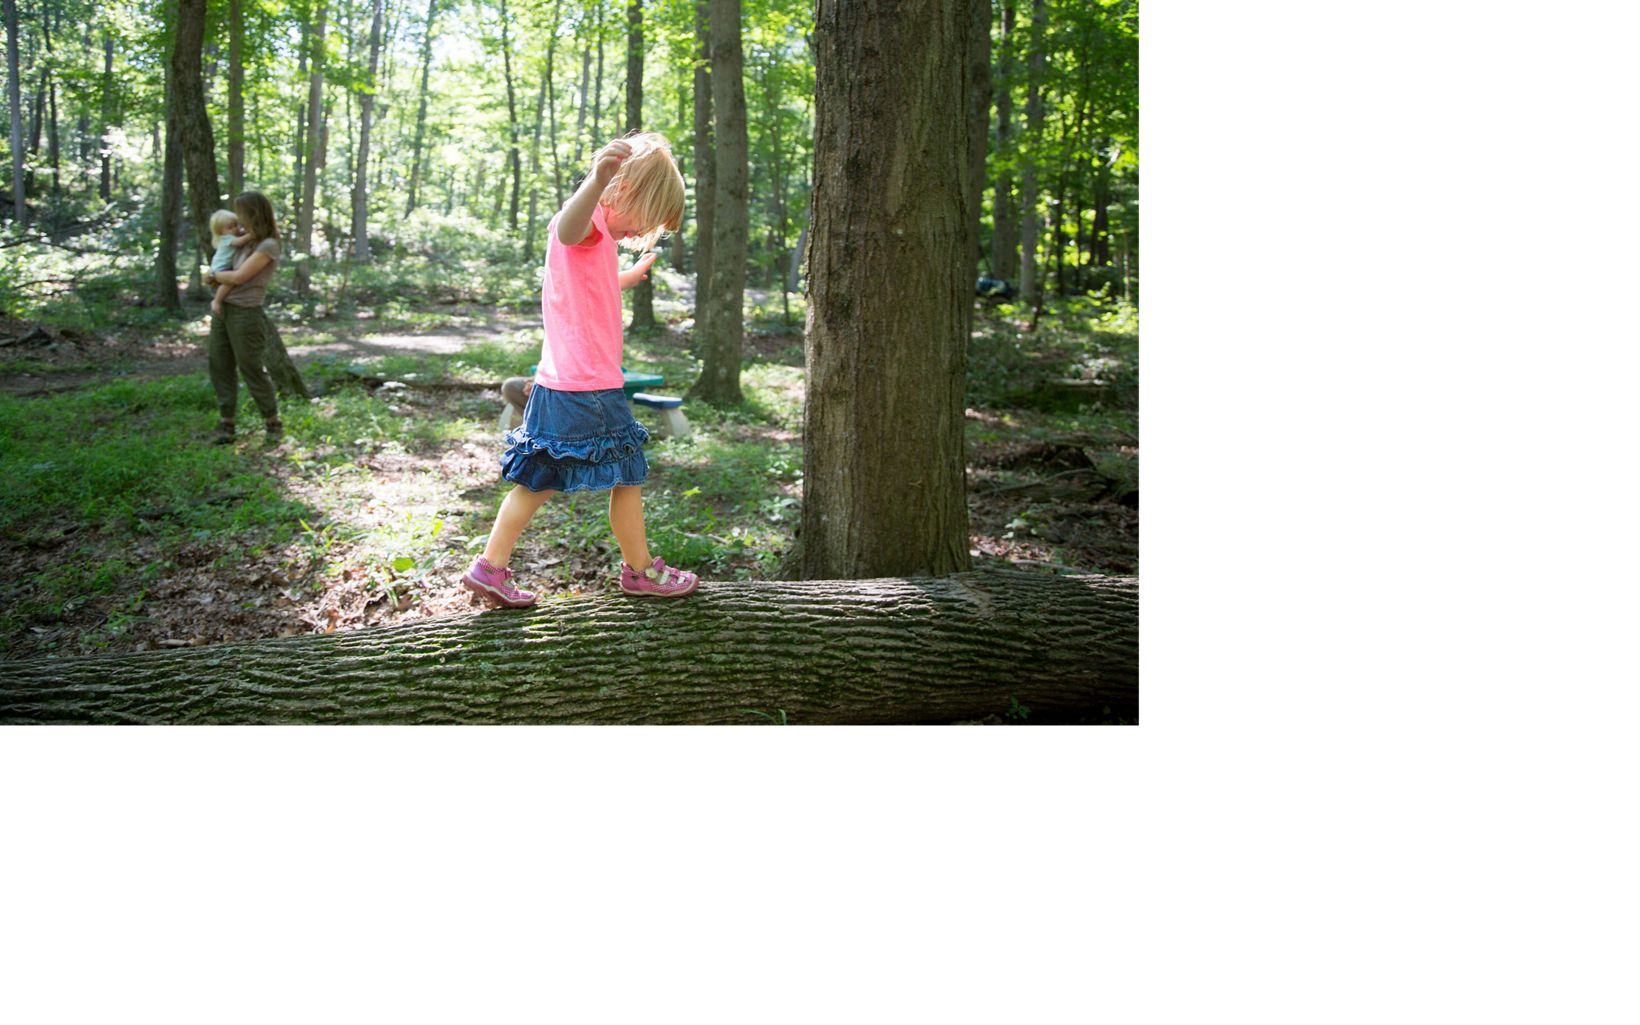 Josh Parrish's wife, Amanda and their children Anna, 4, and Evelyn, 2 years old, in their family forest, Pennsylvania.